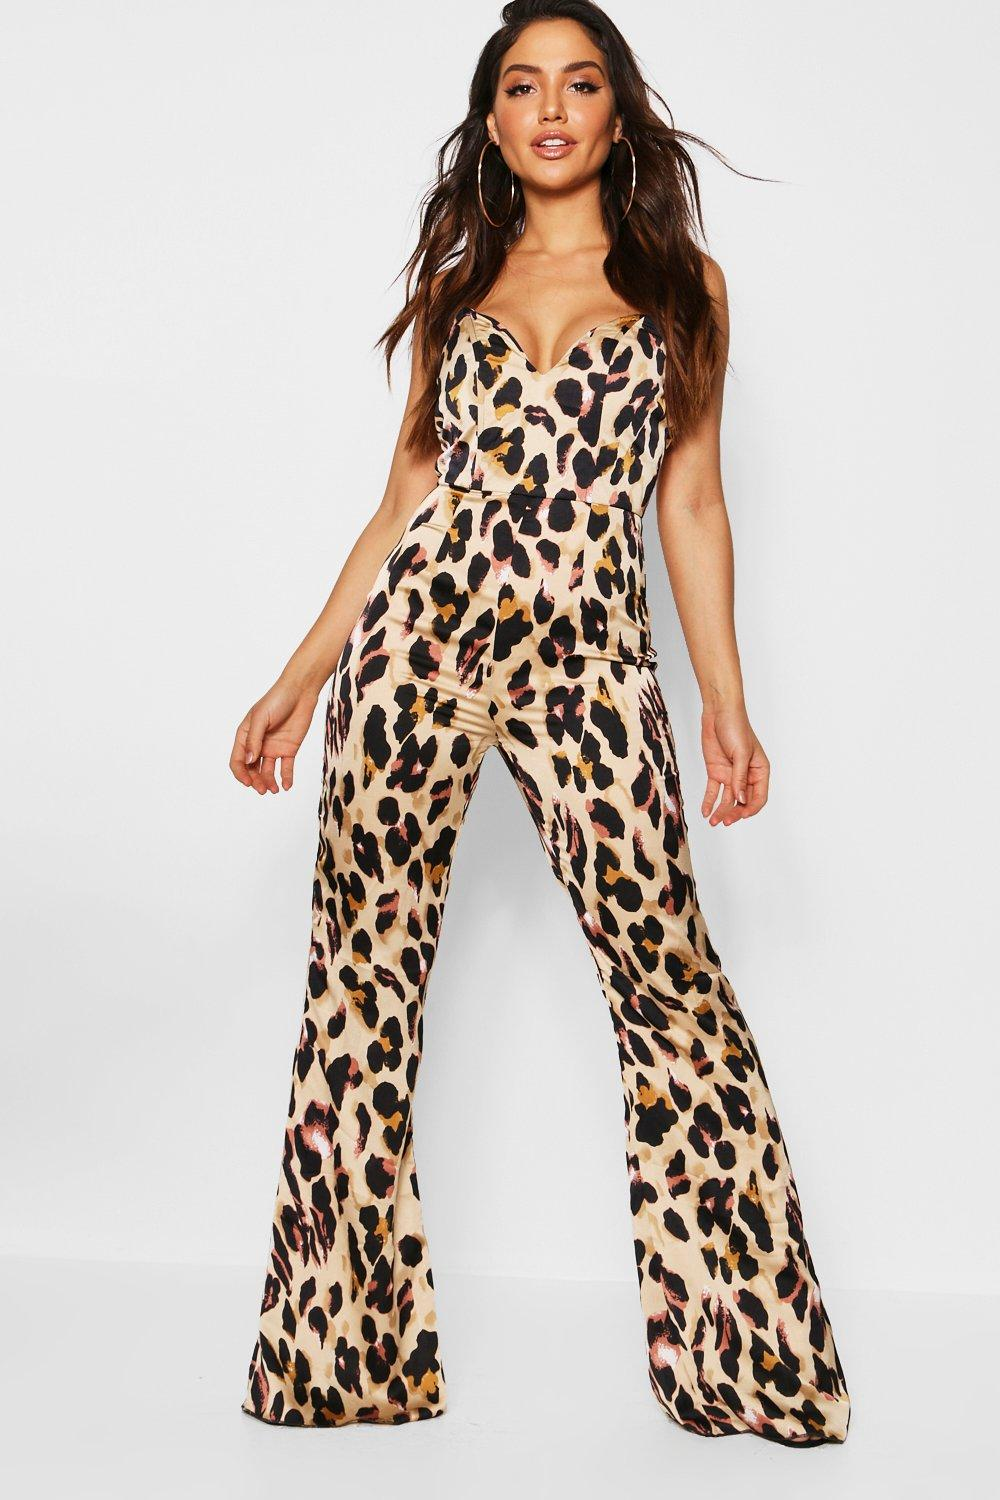 631a807b3e09 Satin Leopard Bustier Jumpsuit. Hover to zoom